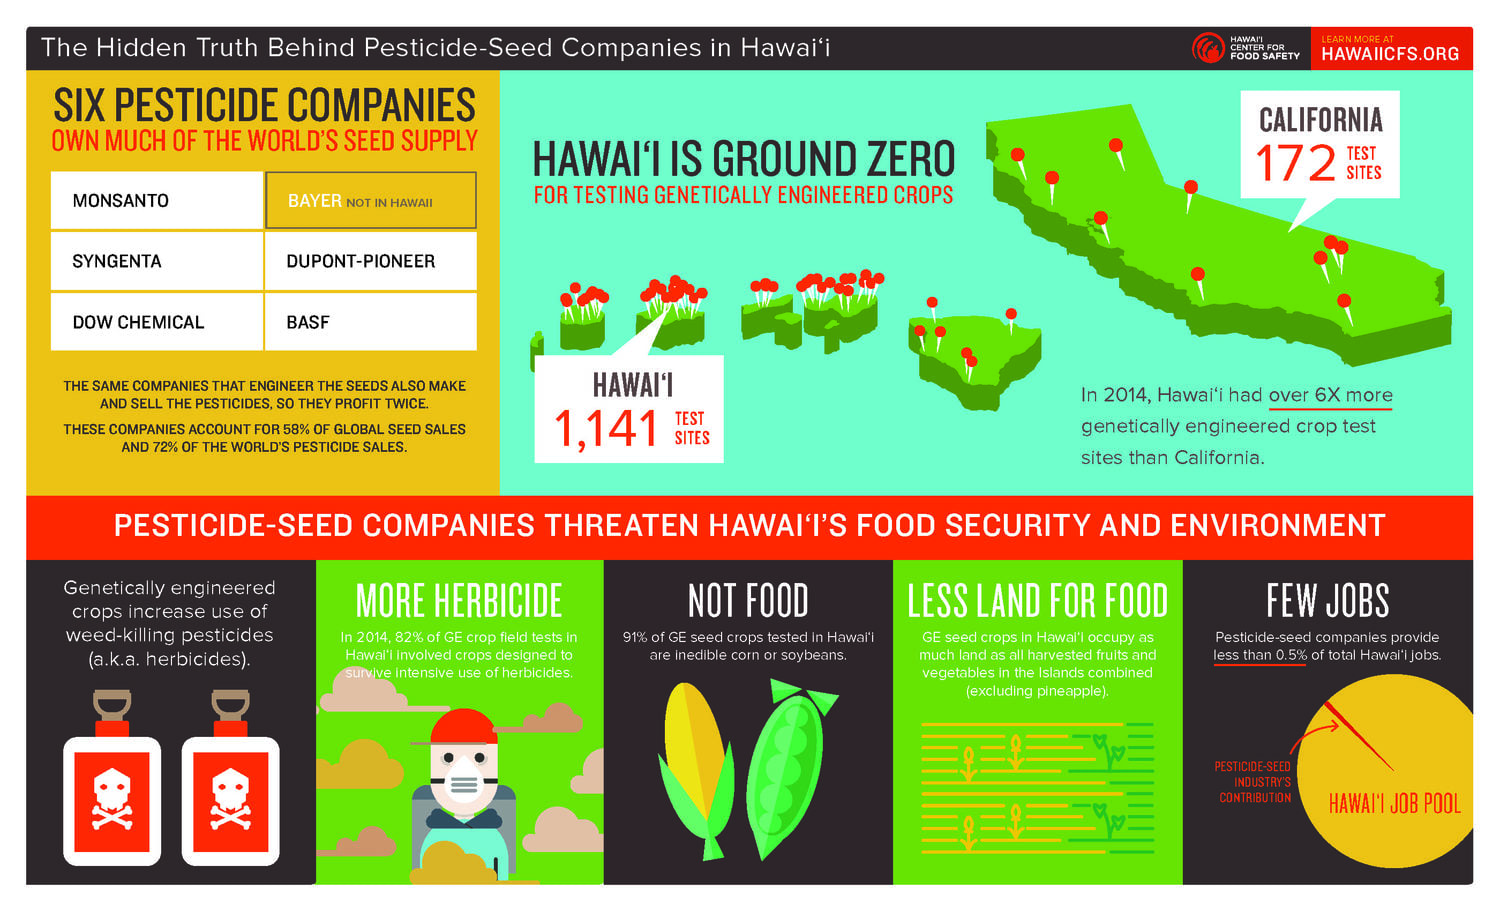 THE HIDDEN TRUTH BEHIND PESTICIDE-SEED INDUSTRY IN HAWAII